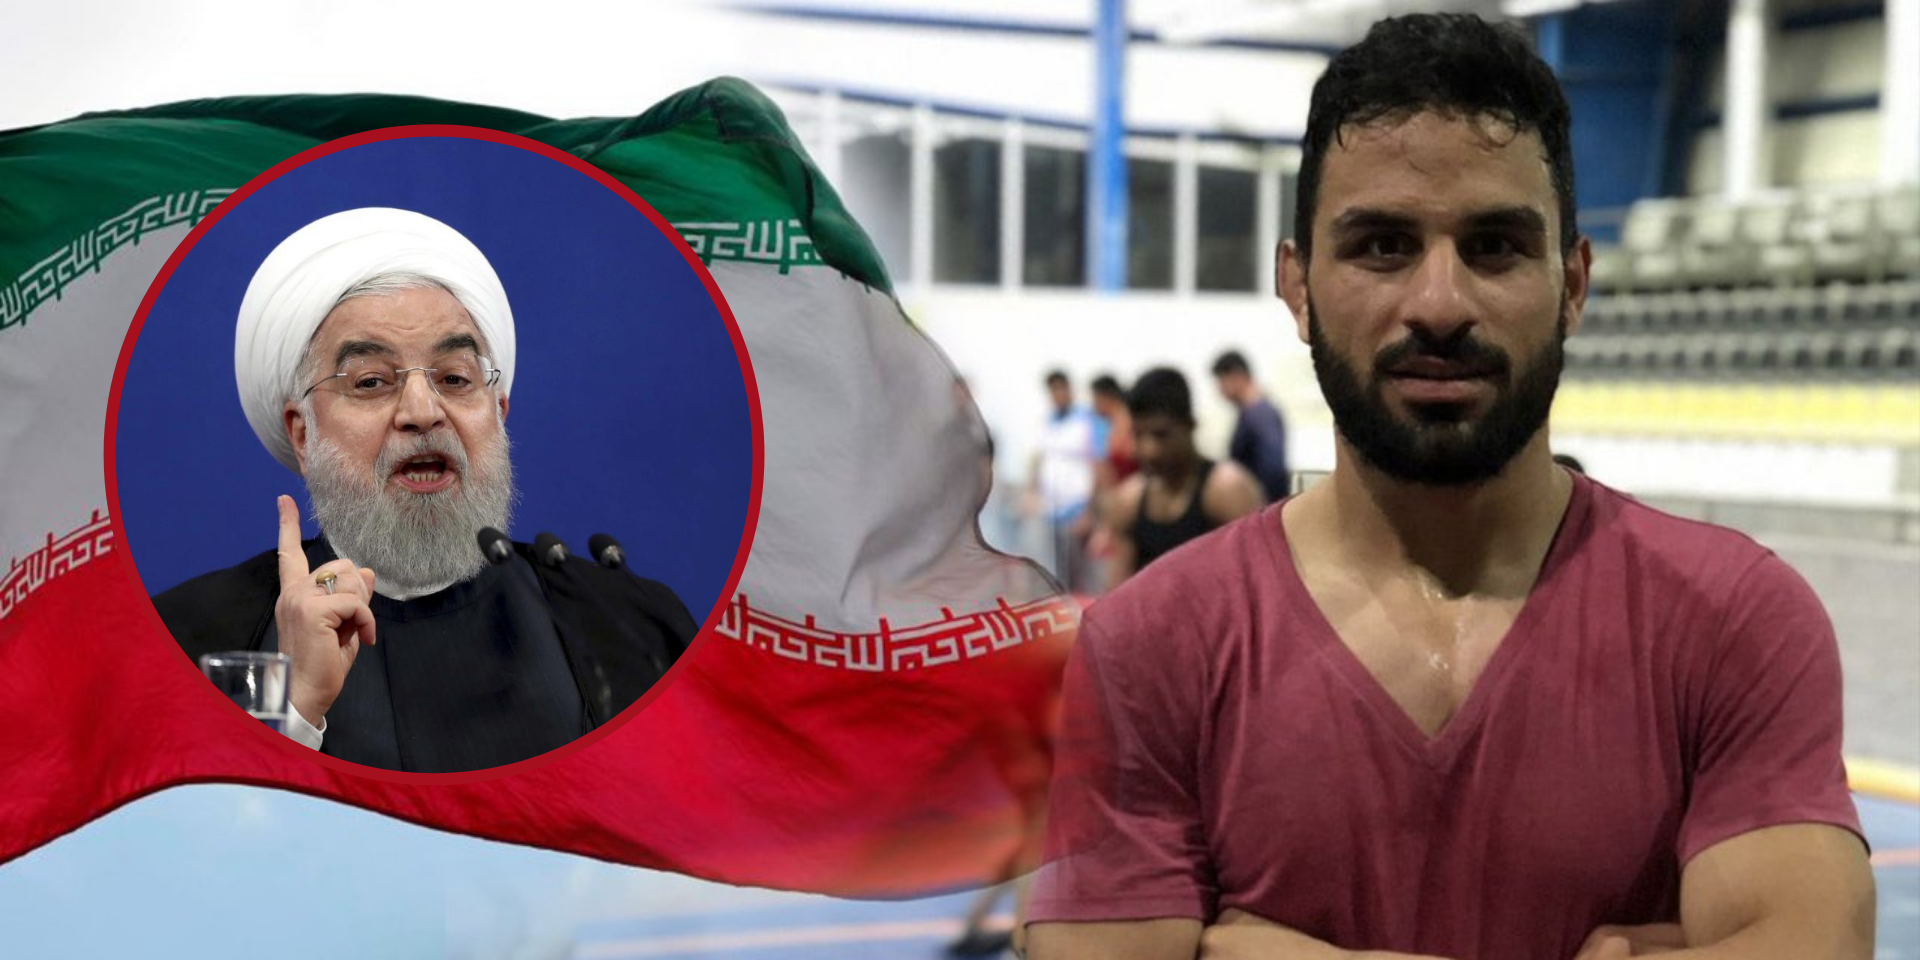 Wrestler Navid Afkari executed by the Iranian government - Navid Afkari